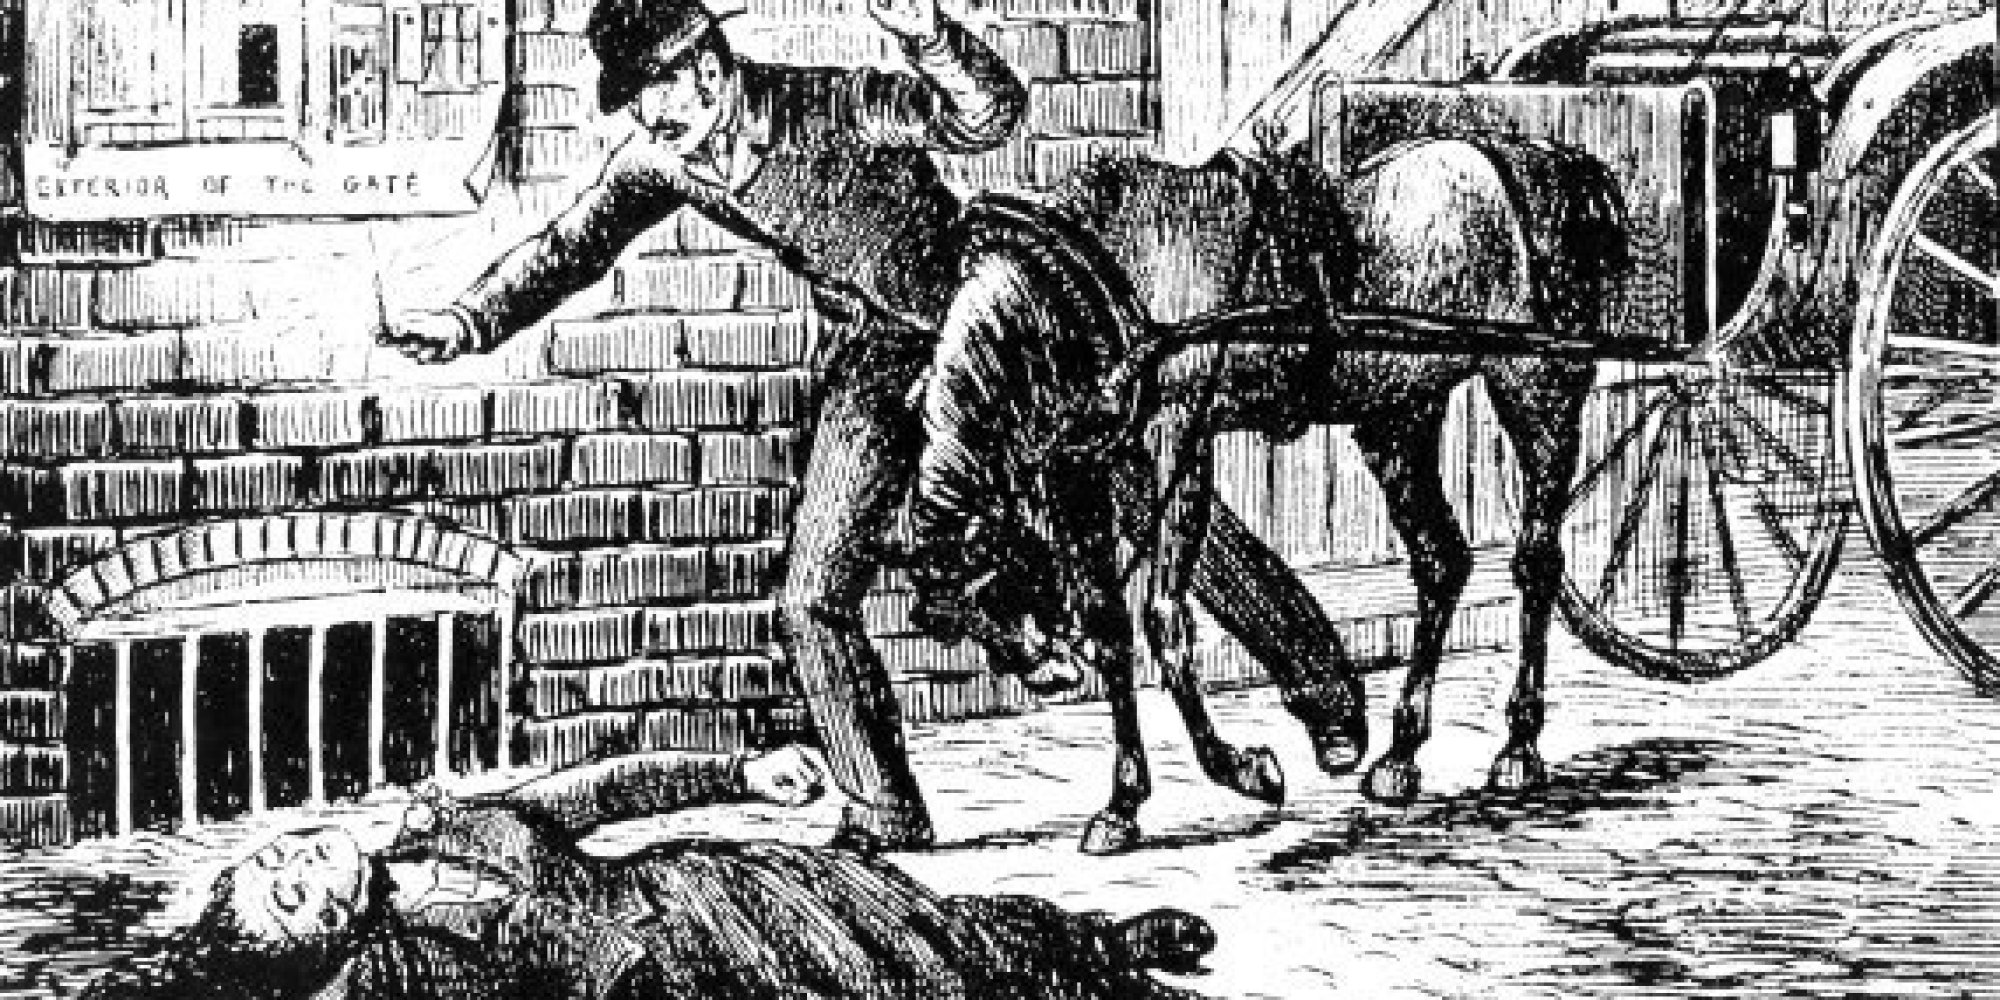 Jack The Ripper: 'Amazing Parallels' With Knife Crime and Migrants 130 Years Ago